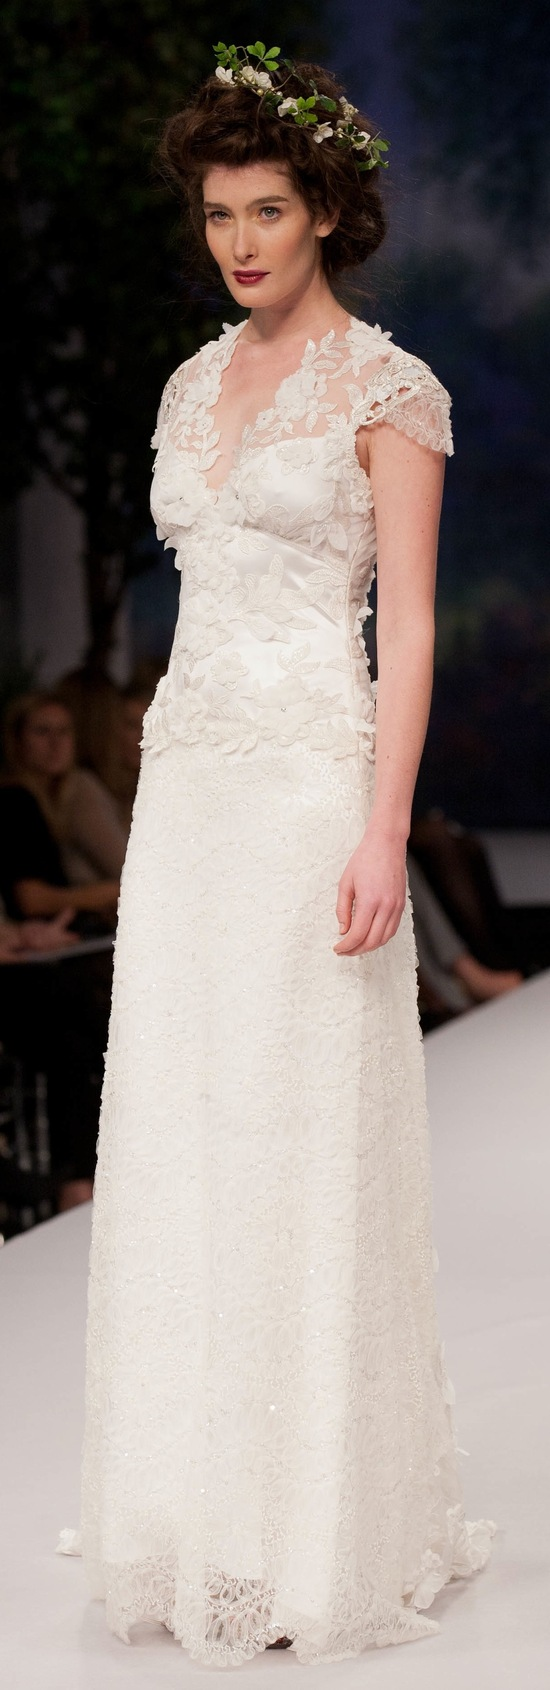 spring 2012 wedding dress claire pettibone belle